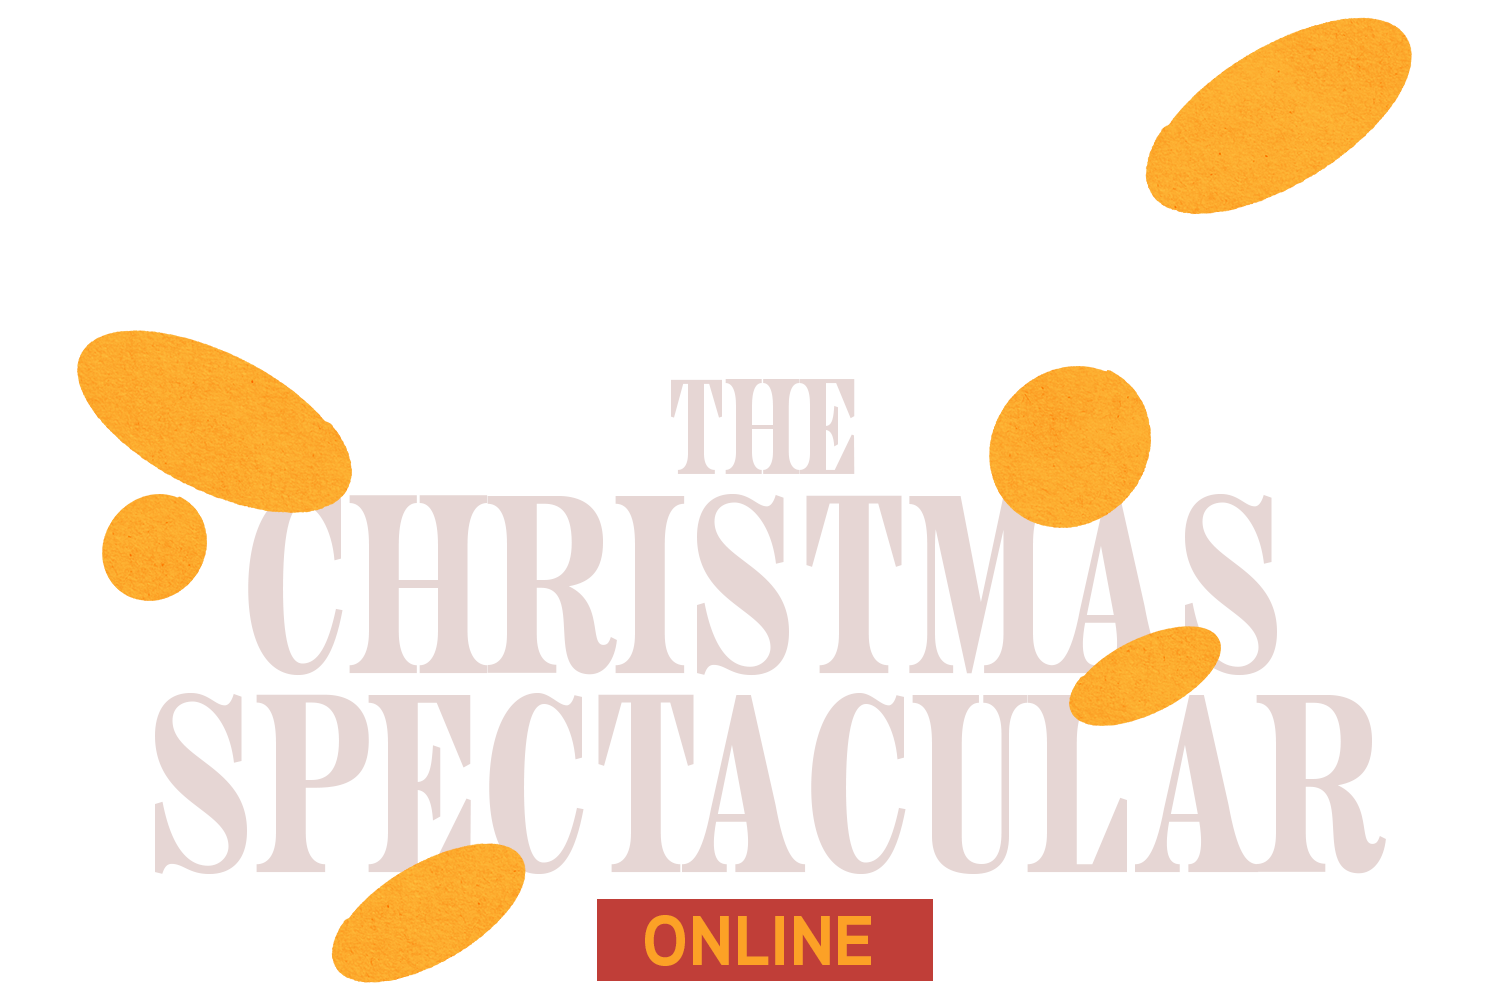 The Christmas Spectacular Online